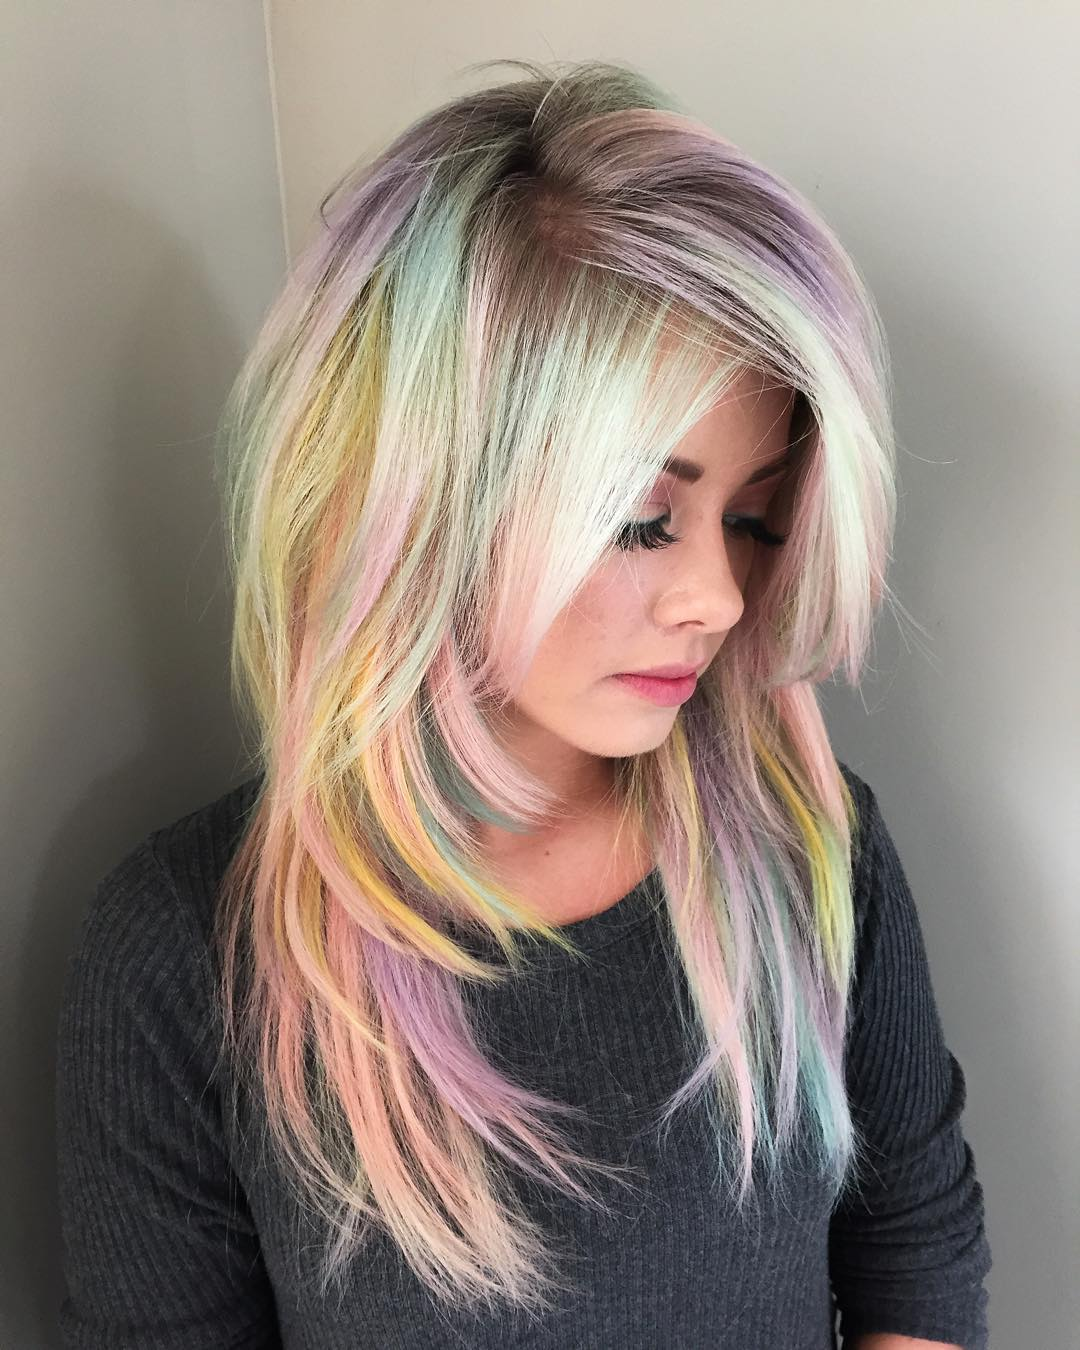 Rainbow Hair Be Like A Rainbow 28 Reasons To Live In Color